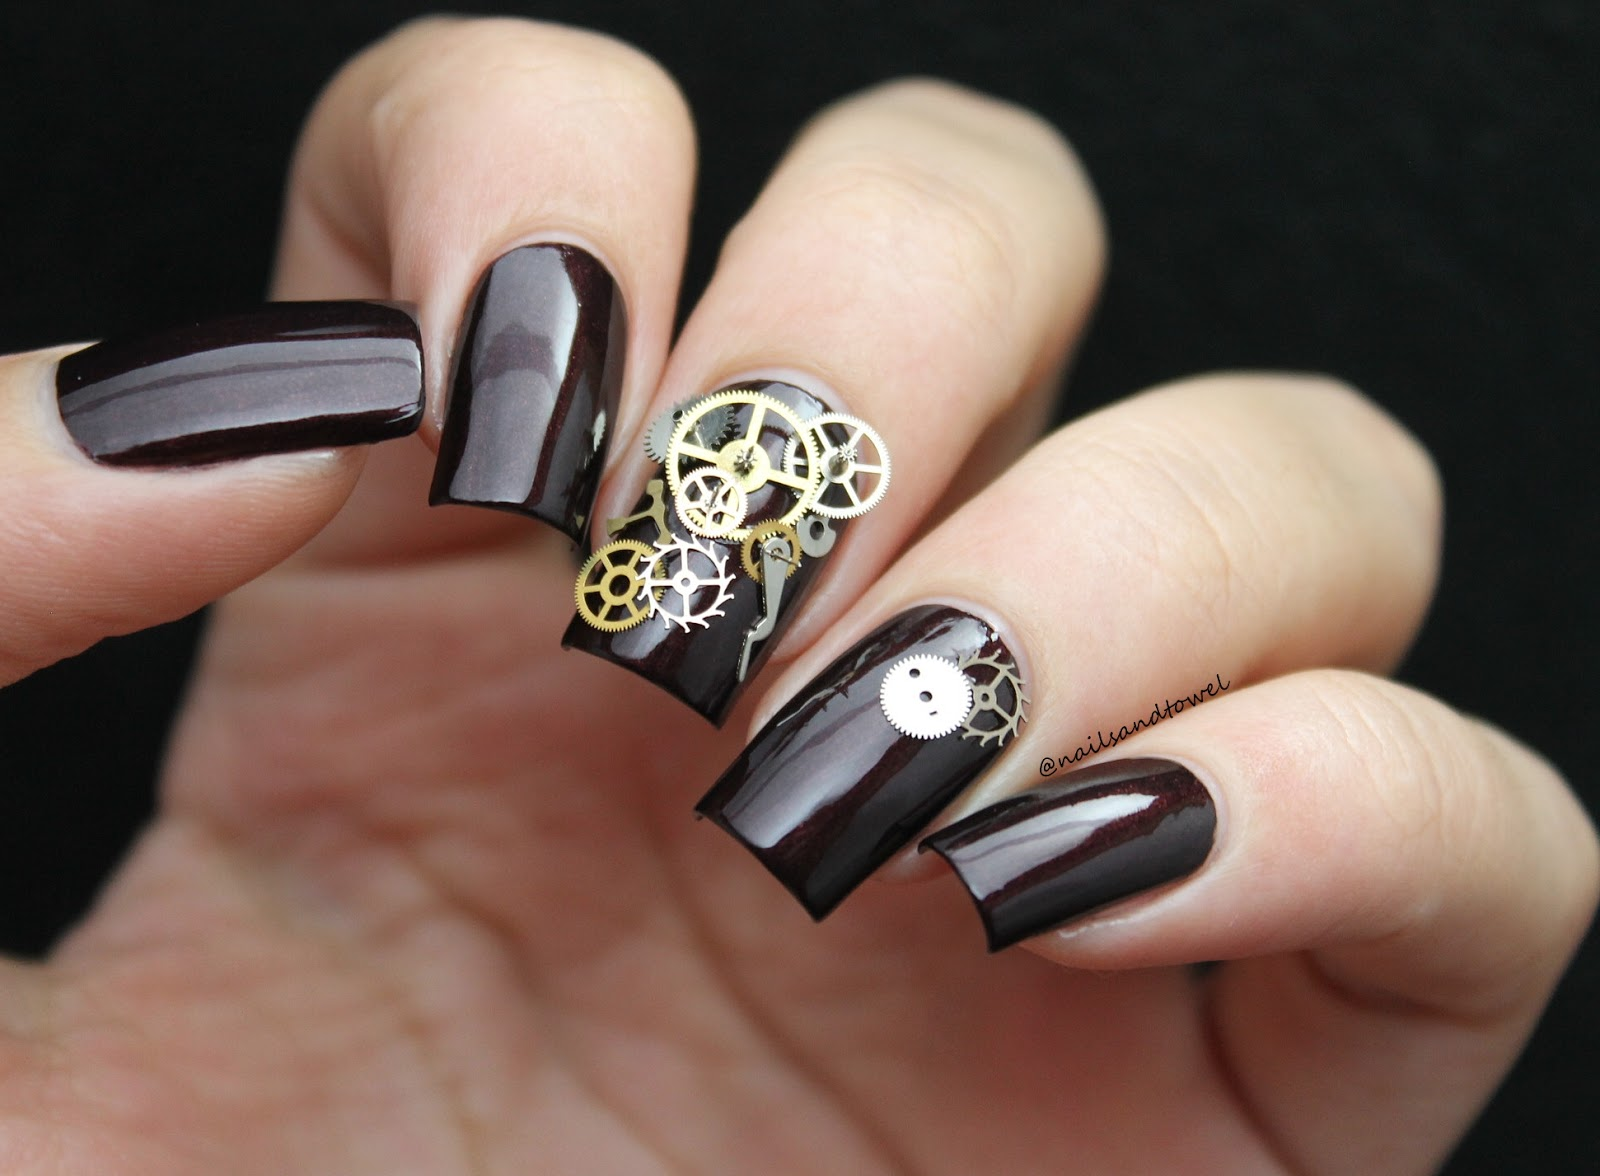 My Nail Art Journal: The Clockwork Nails + Born Pretty Store